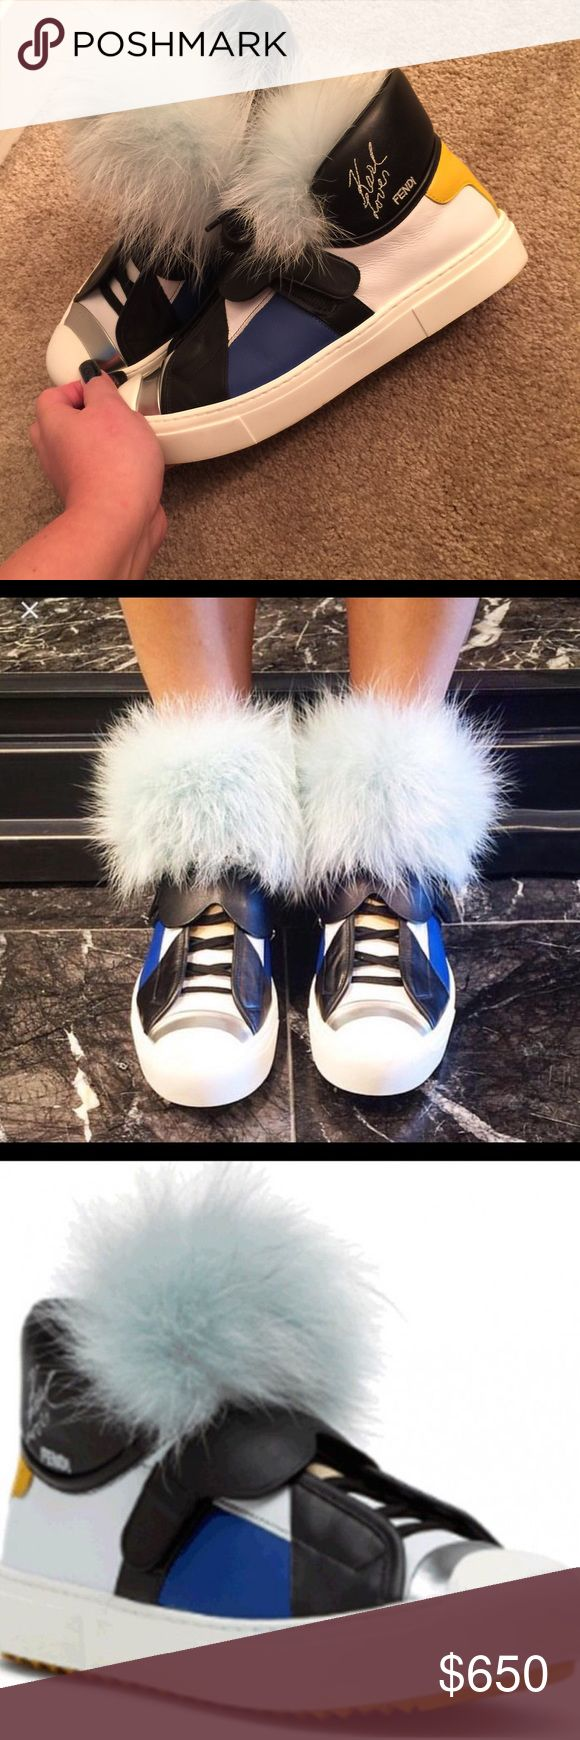 Fendi Karlito  fox fur sneakers Limited edition Fendi aqua fox fur leather sneakers! Super cute retails for $1800.00 at Saks and Nordstroms. Worn once. Excellent condition. Fendi Shoes Sneakers